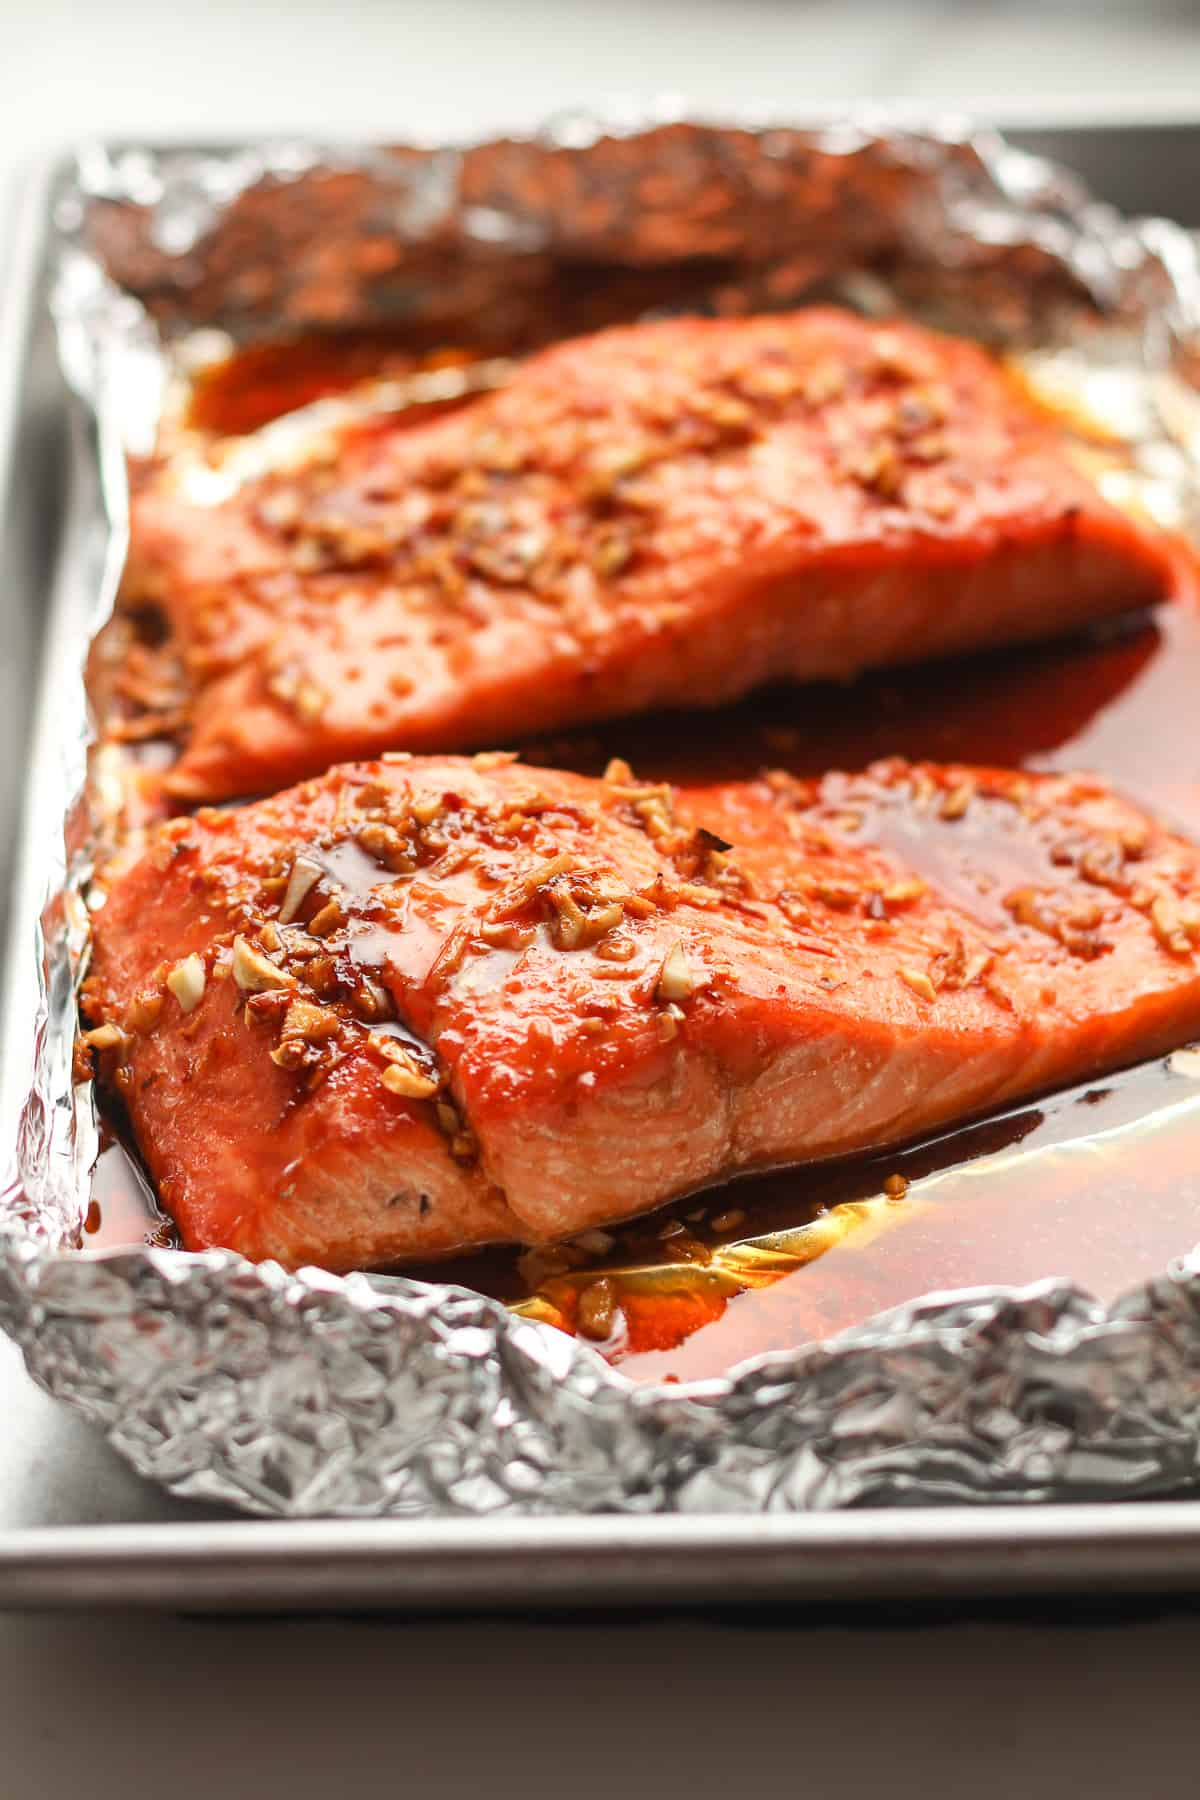 Side shot of two large pieces of baked salmon.